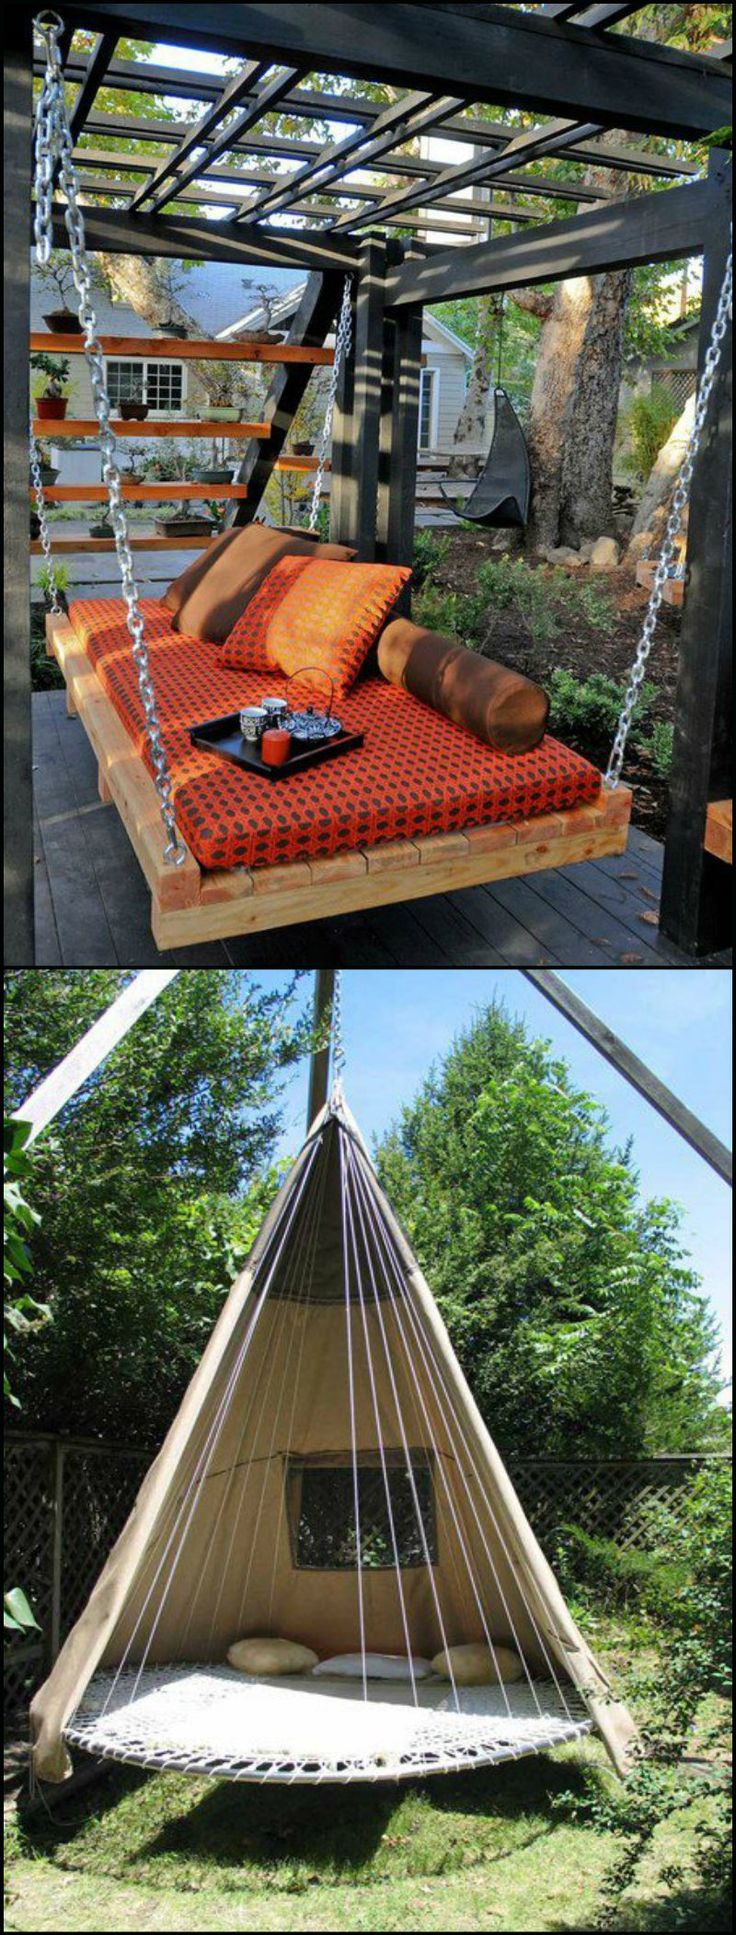 We've hand picked these swing projects to inspire you to build one. Yes! you can build one yourself, and it's not as hard as it may look. Find the swing that inspires you, and learn how to make your own! http://theownerbuildernetwork.co/a2u3 Ready to make your own swing?